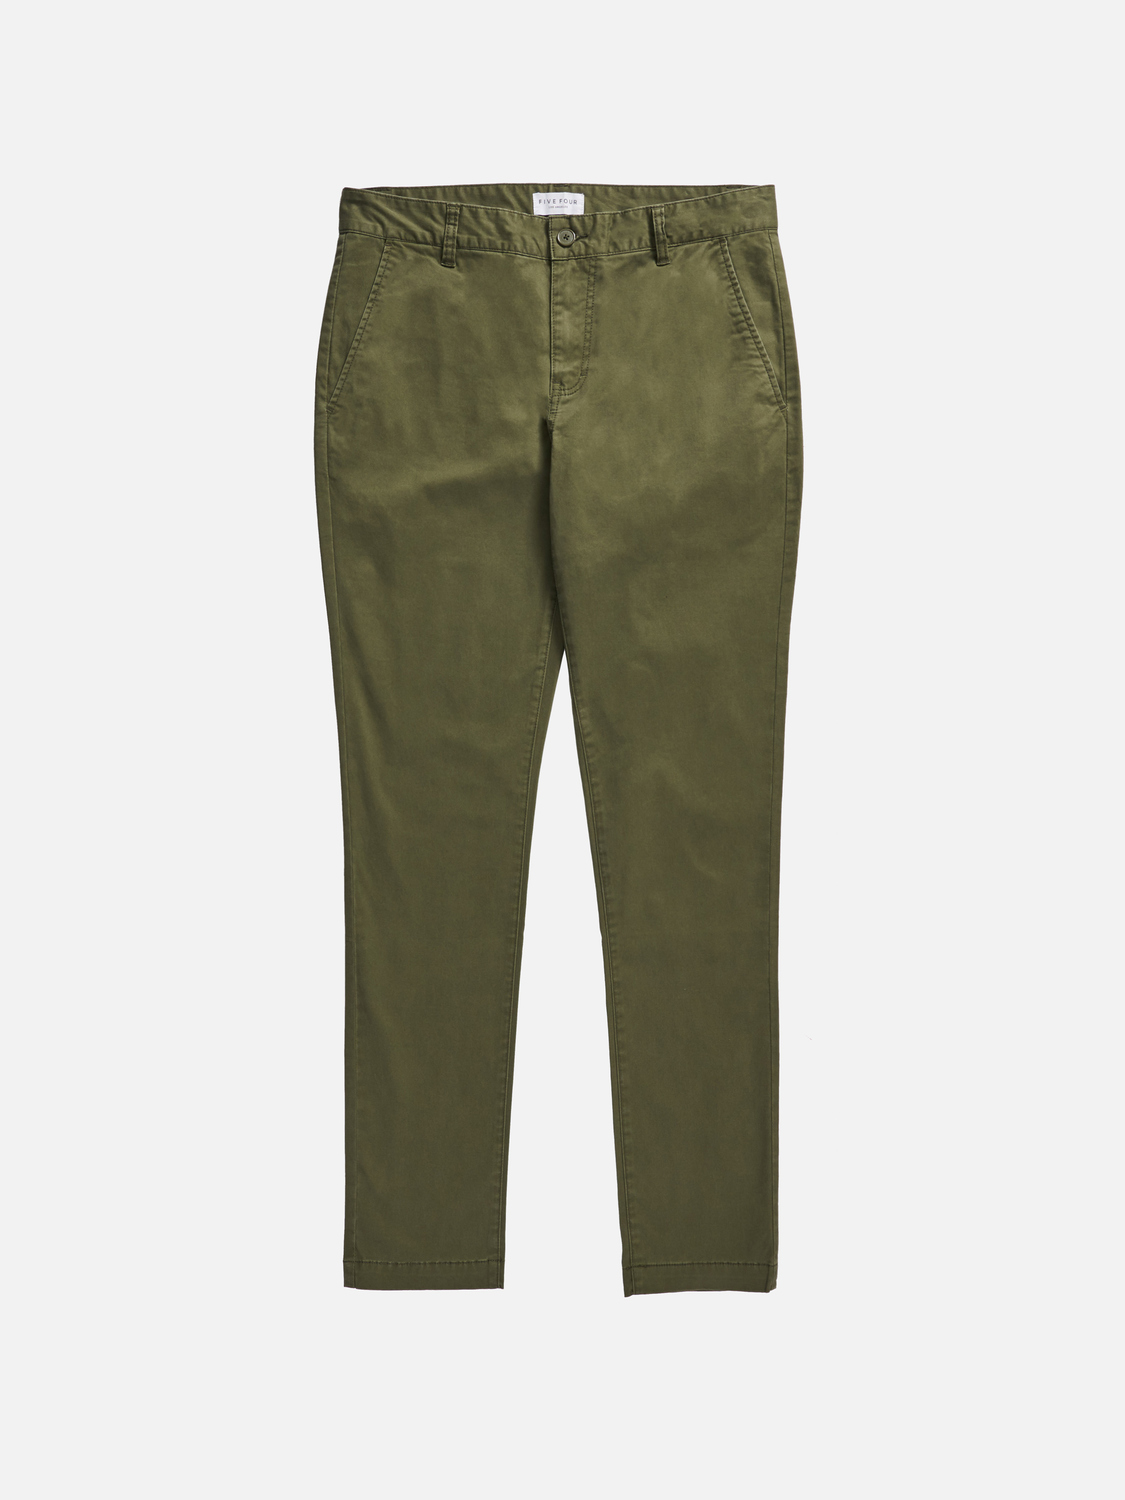 campus slim fit pant - olive